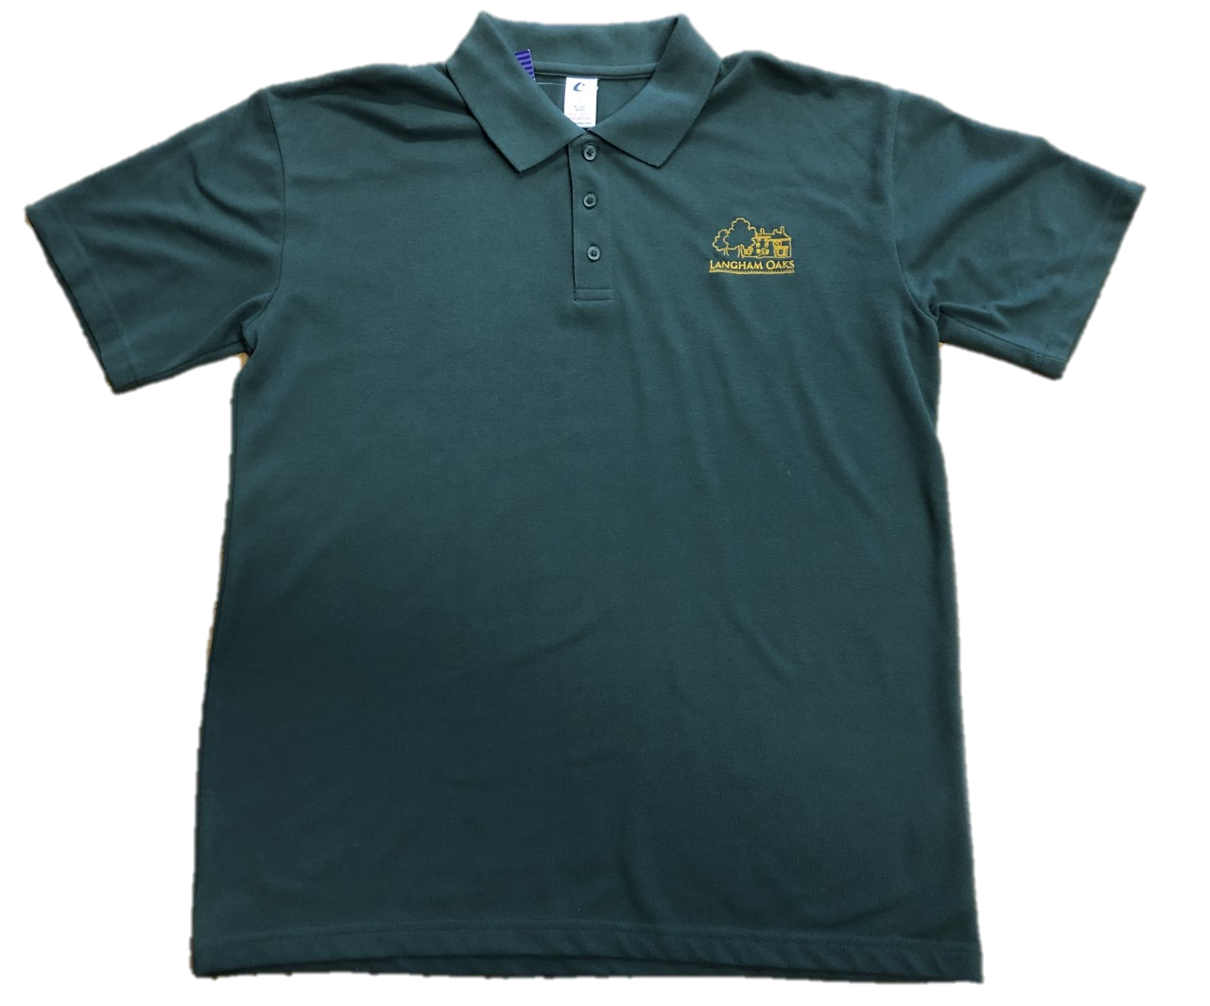 Polo Shirt Image